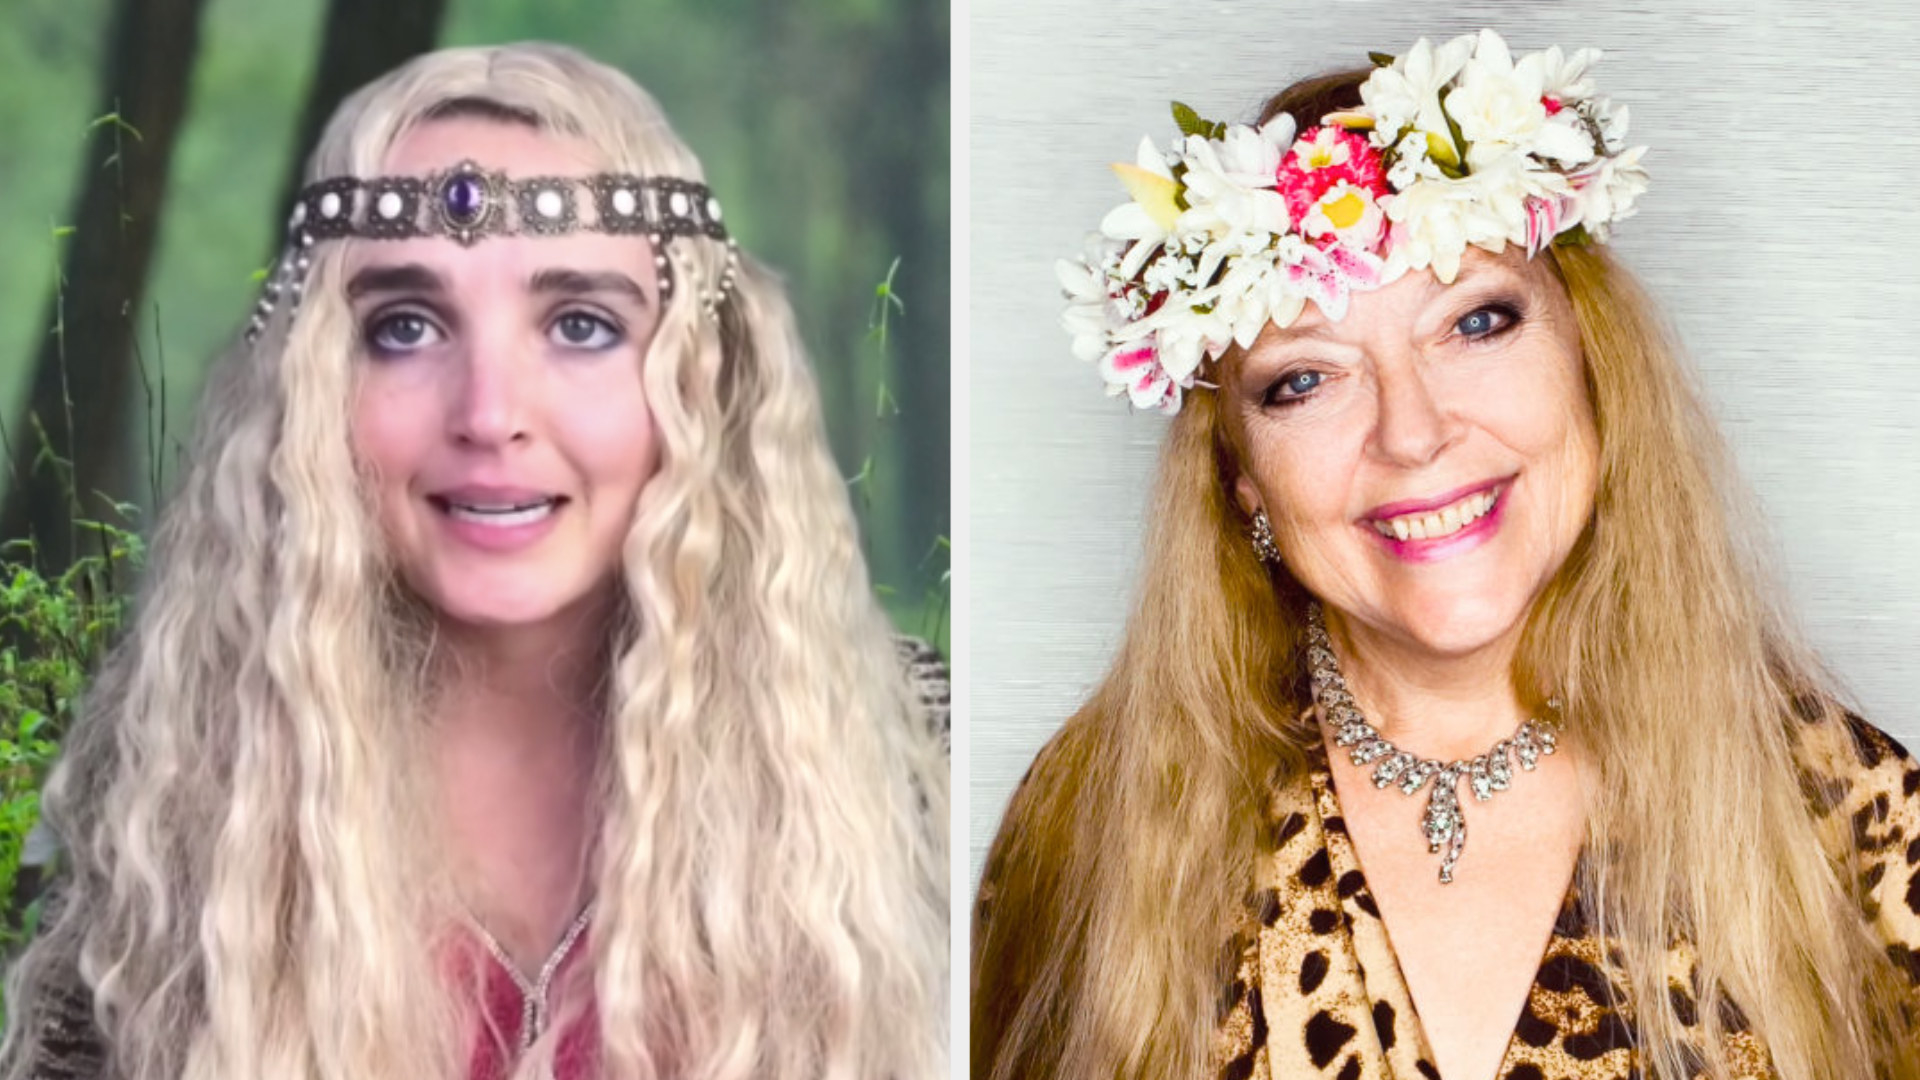 Chloe Fineman in a long blonde wig with a headband across her forehead next to Carole Baskin smiling with a flower crown across her forehead